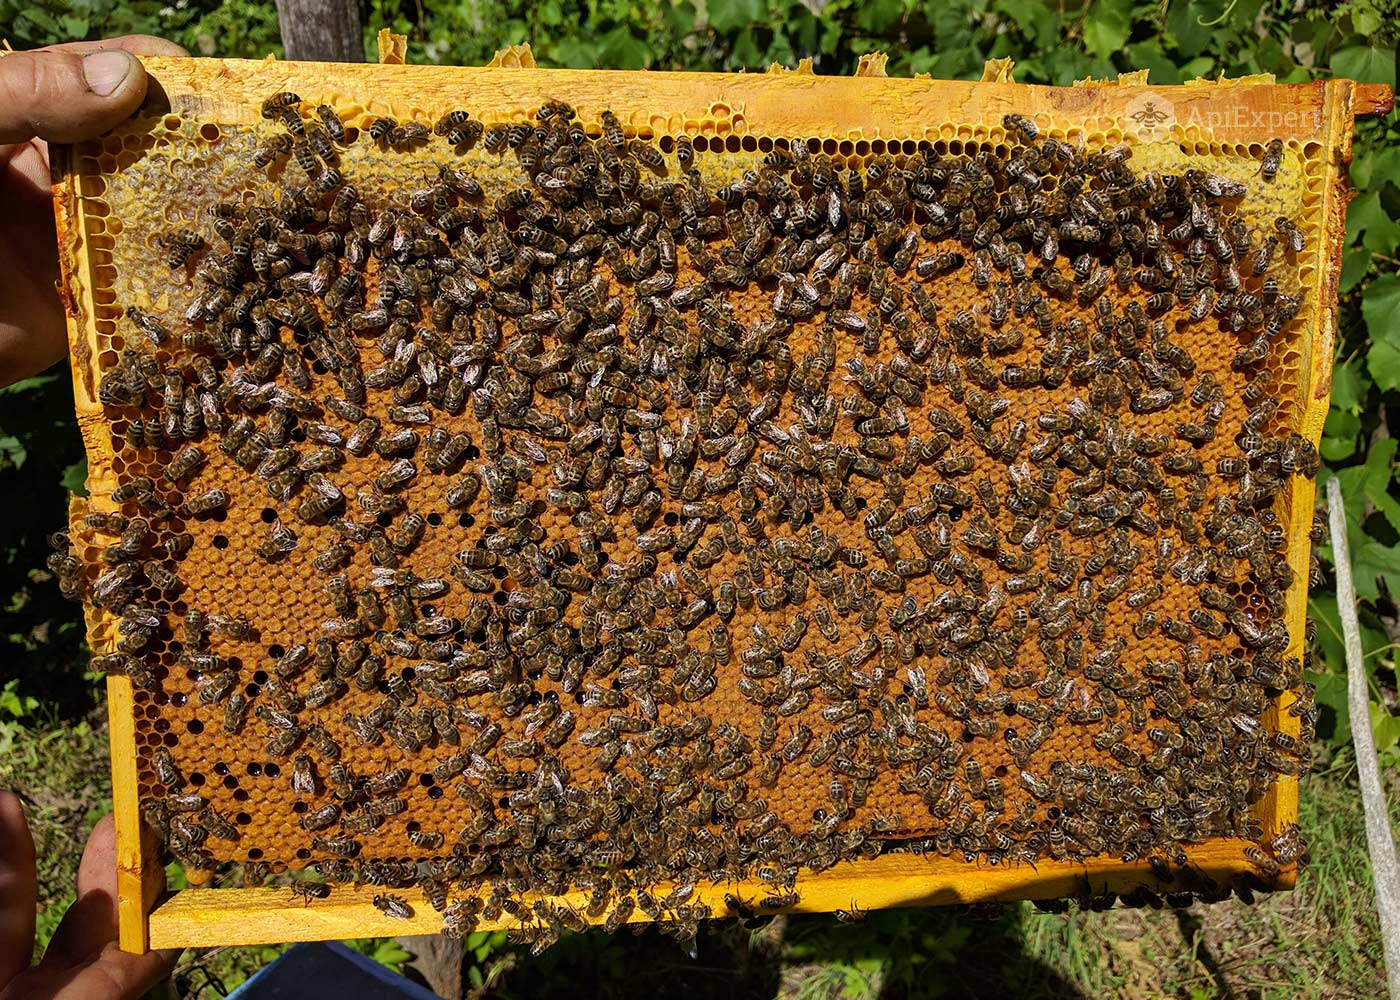 Bee Swarms on 4 Dadant Frames • ApiExpert